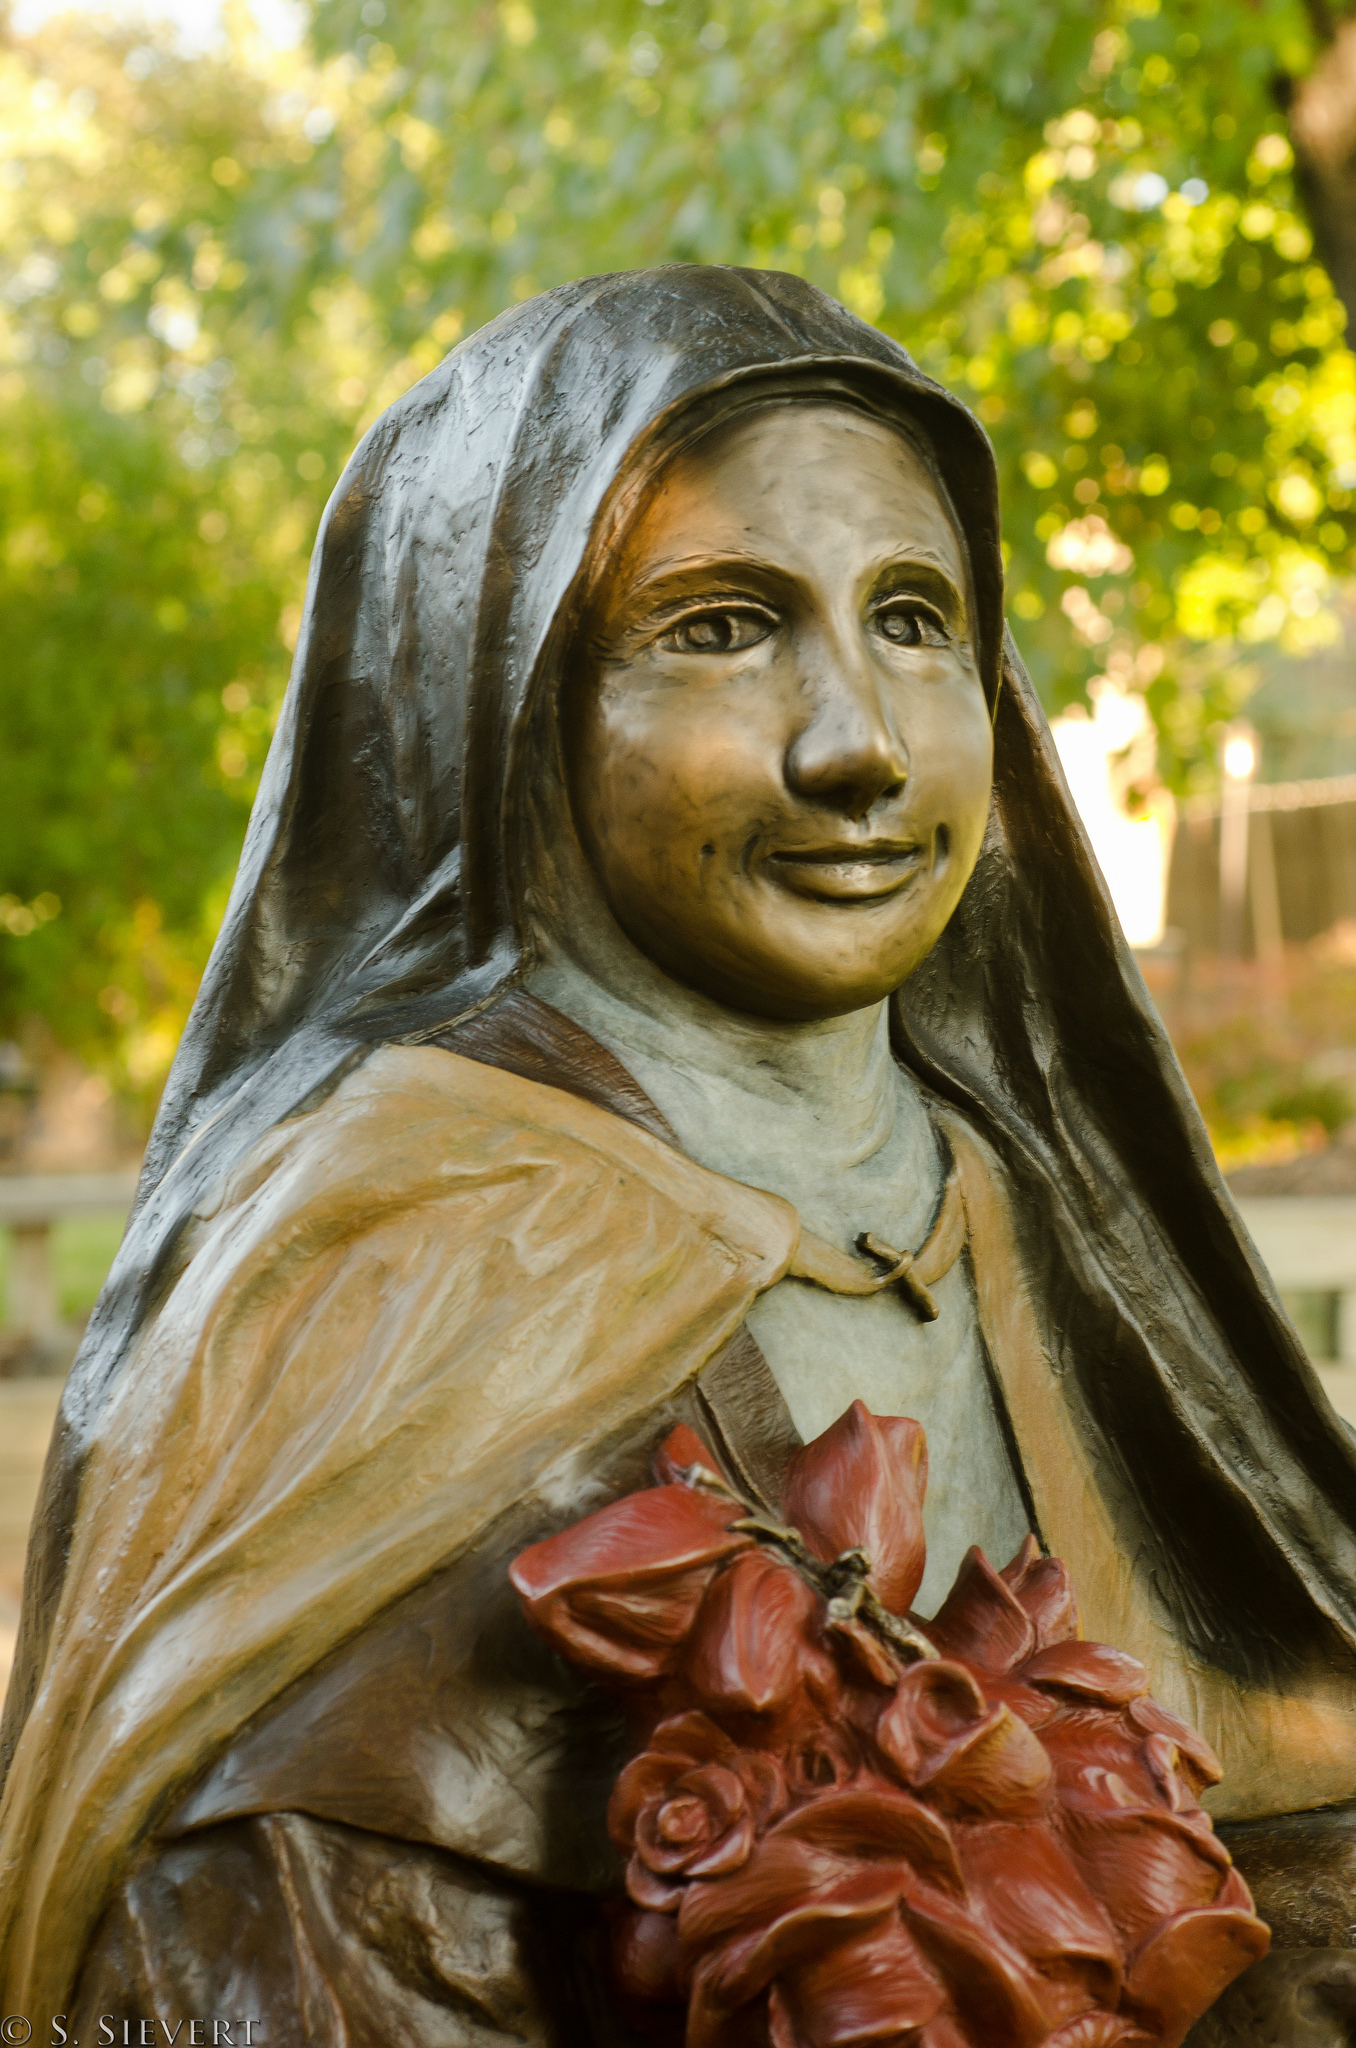 The Little Flower (Saint Therese of Lisieux)